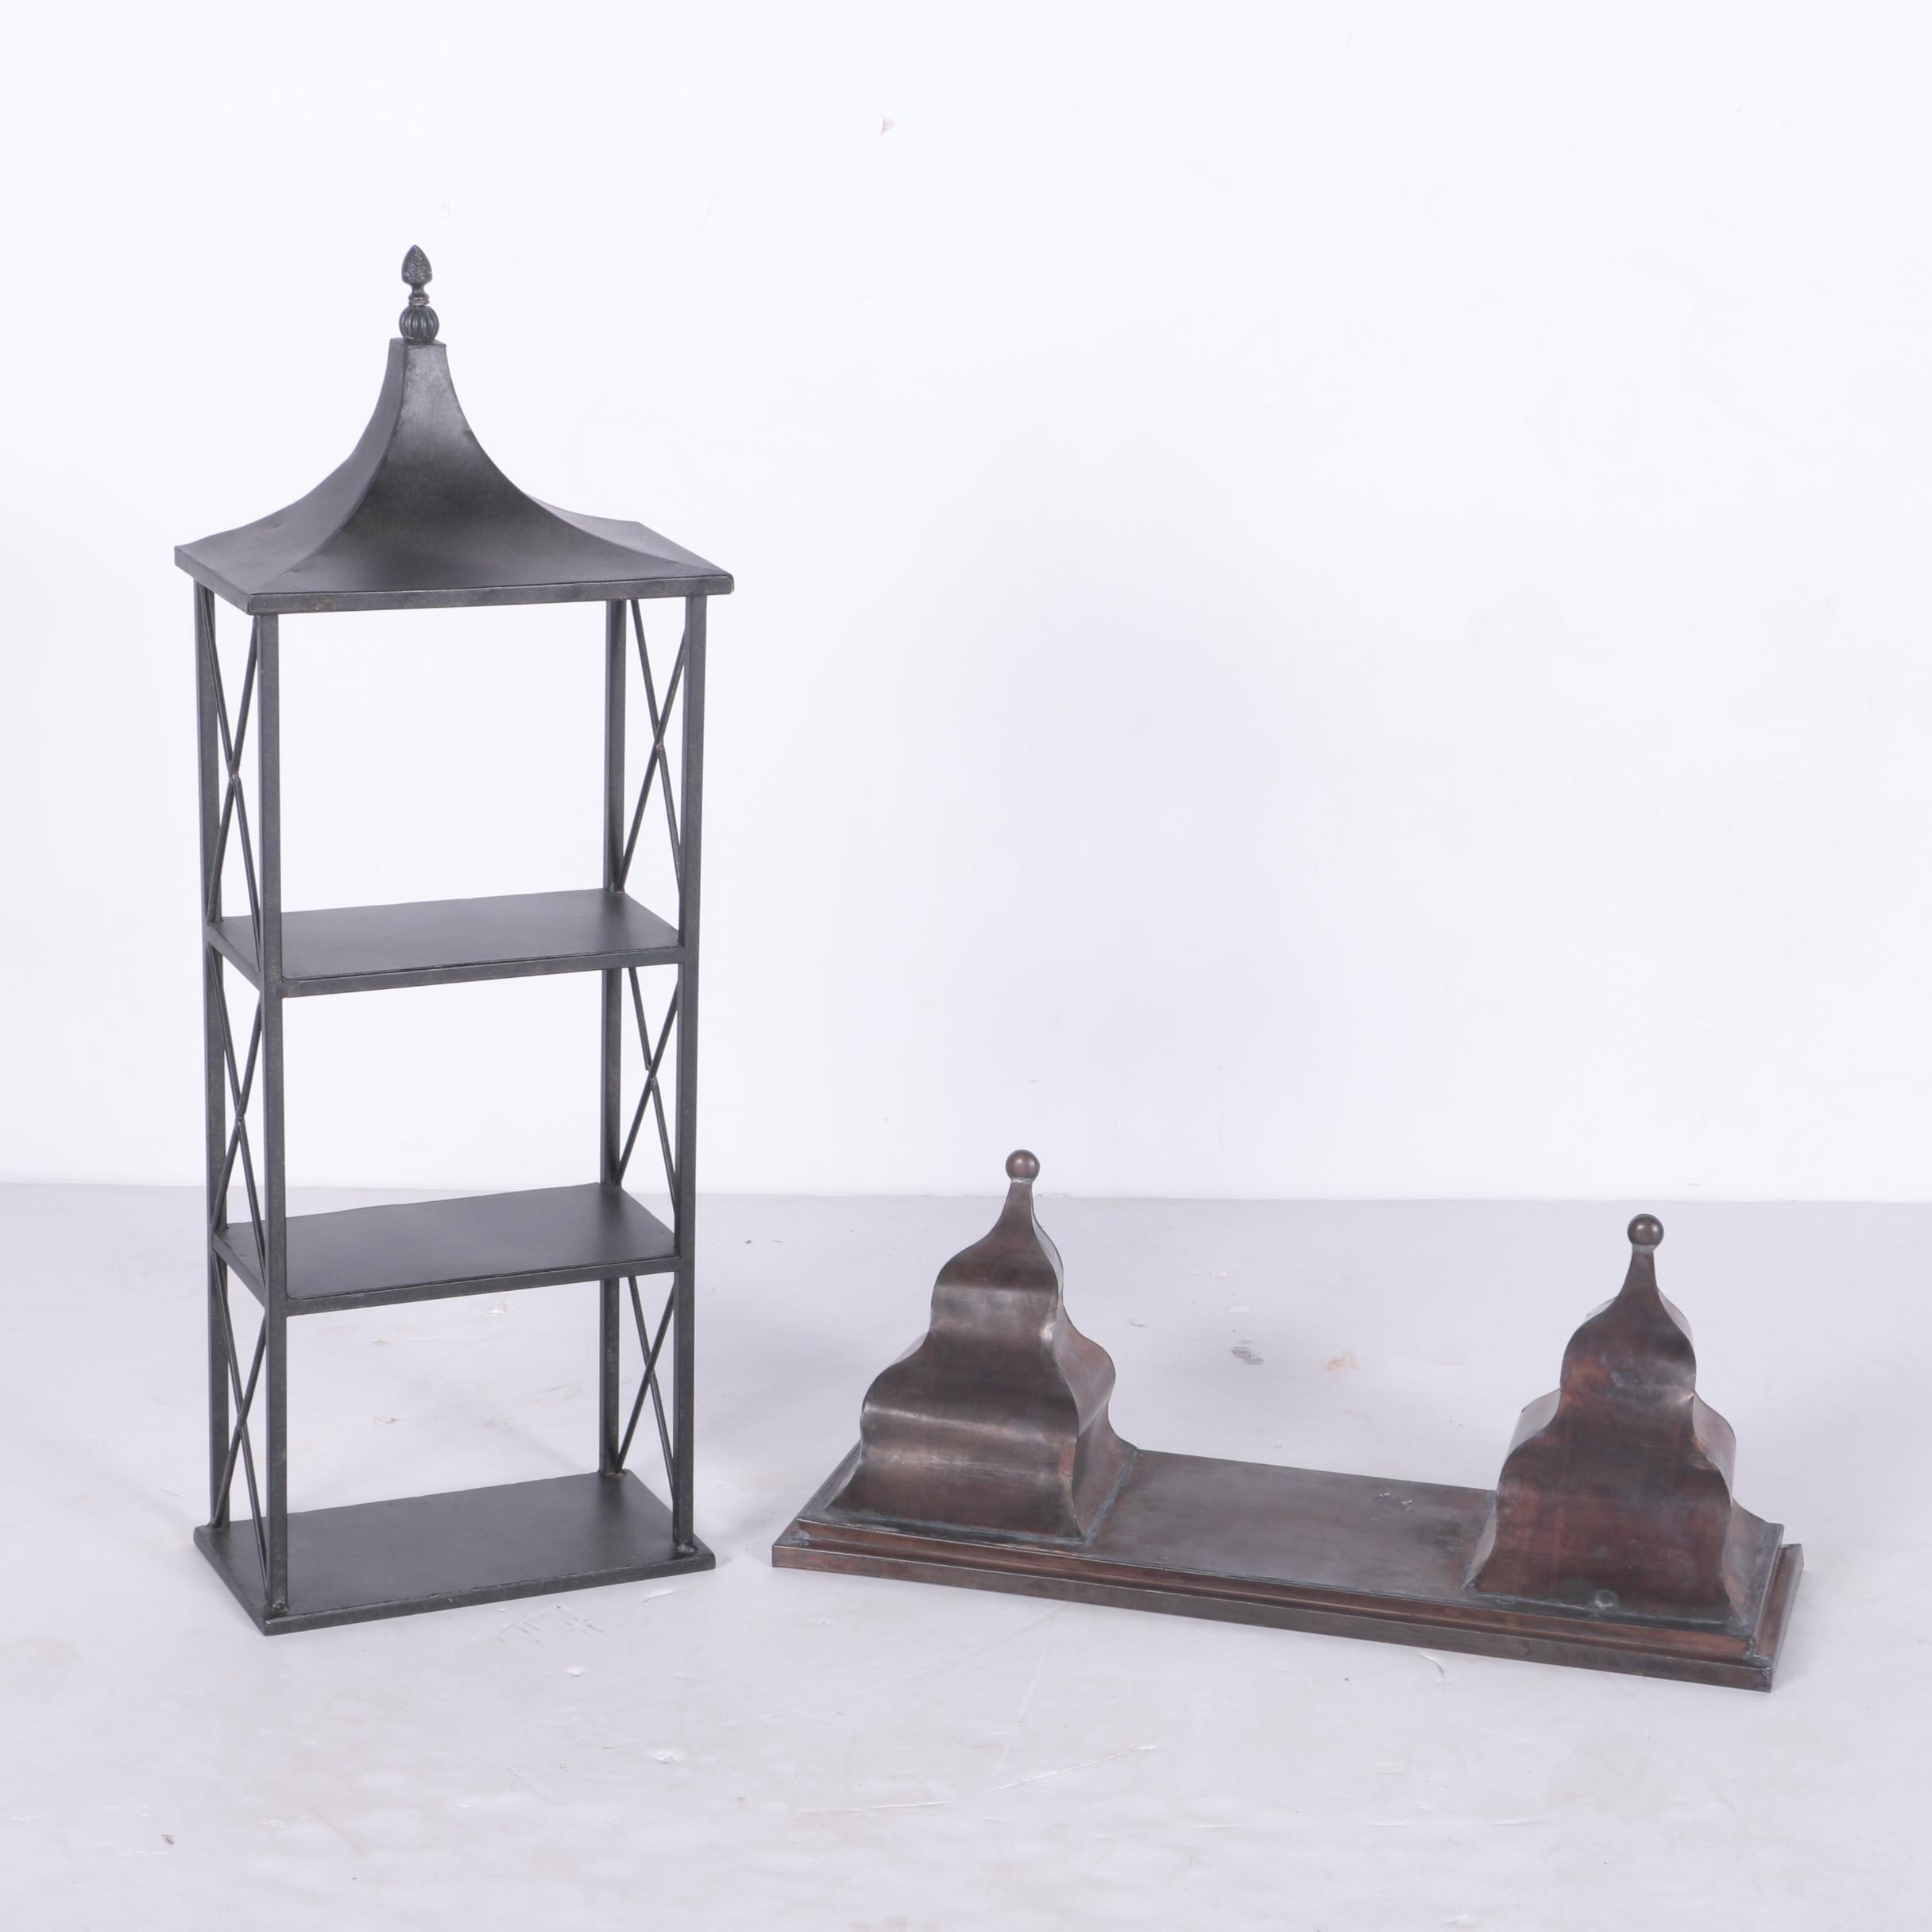 Decorative Metal Standing Shelf Unit and Hanging Shelf